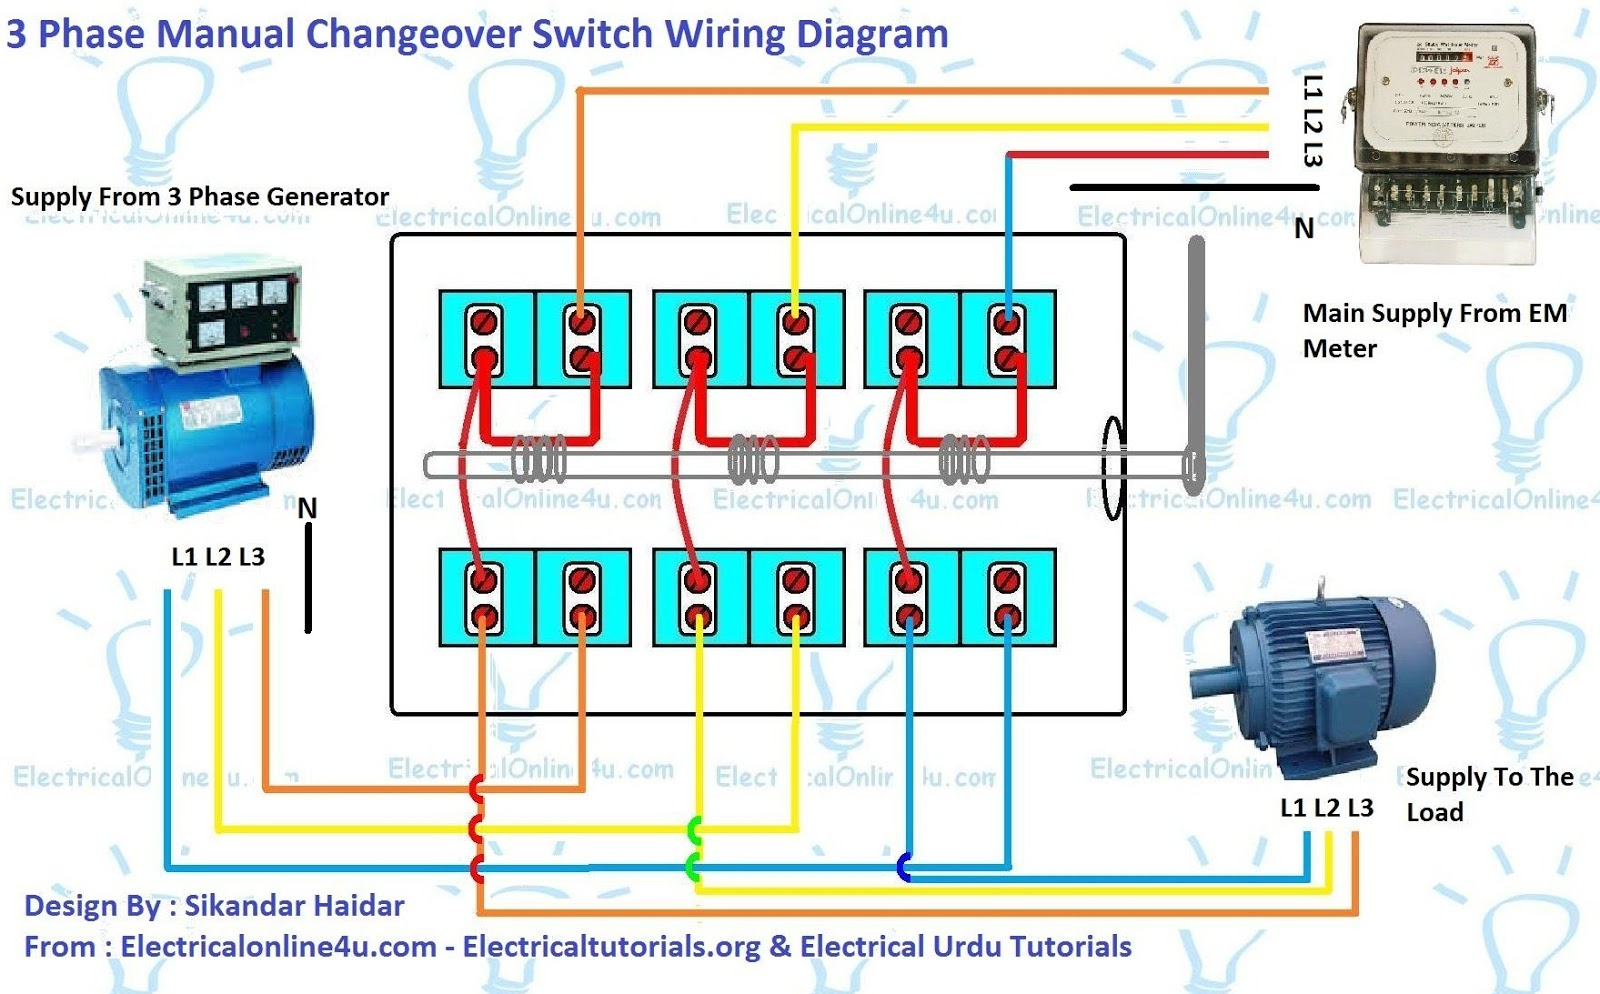 3%2Bphase%2Bmanual%2Bchangeover%2Bswitch%2Bwiring%2Bdiagram 3 phase manual changeover switch wiring diagram for generator manual changeover switch wiring diagram at bayanpartner.co